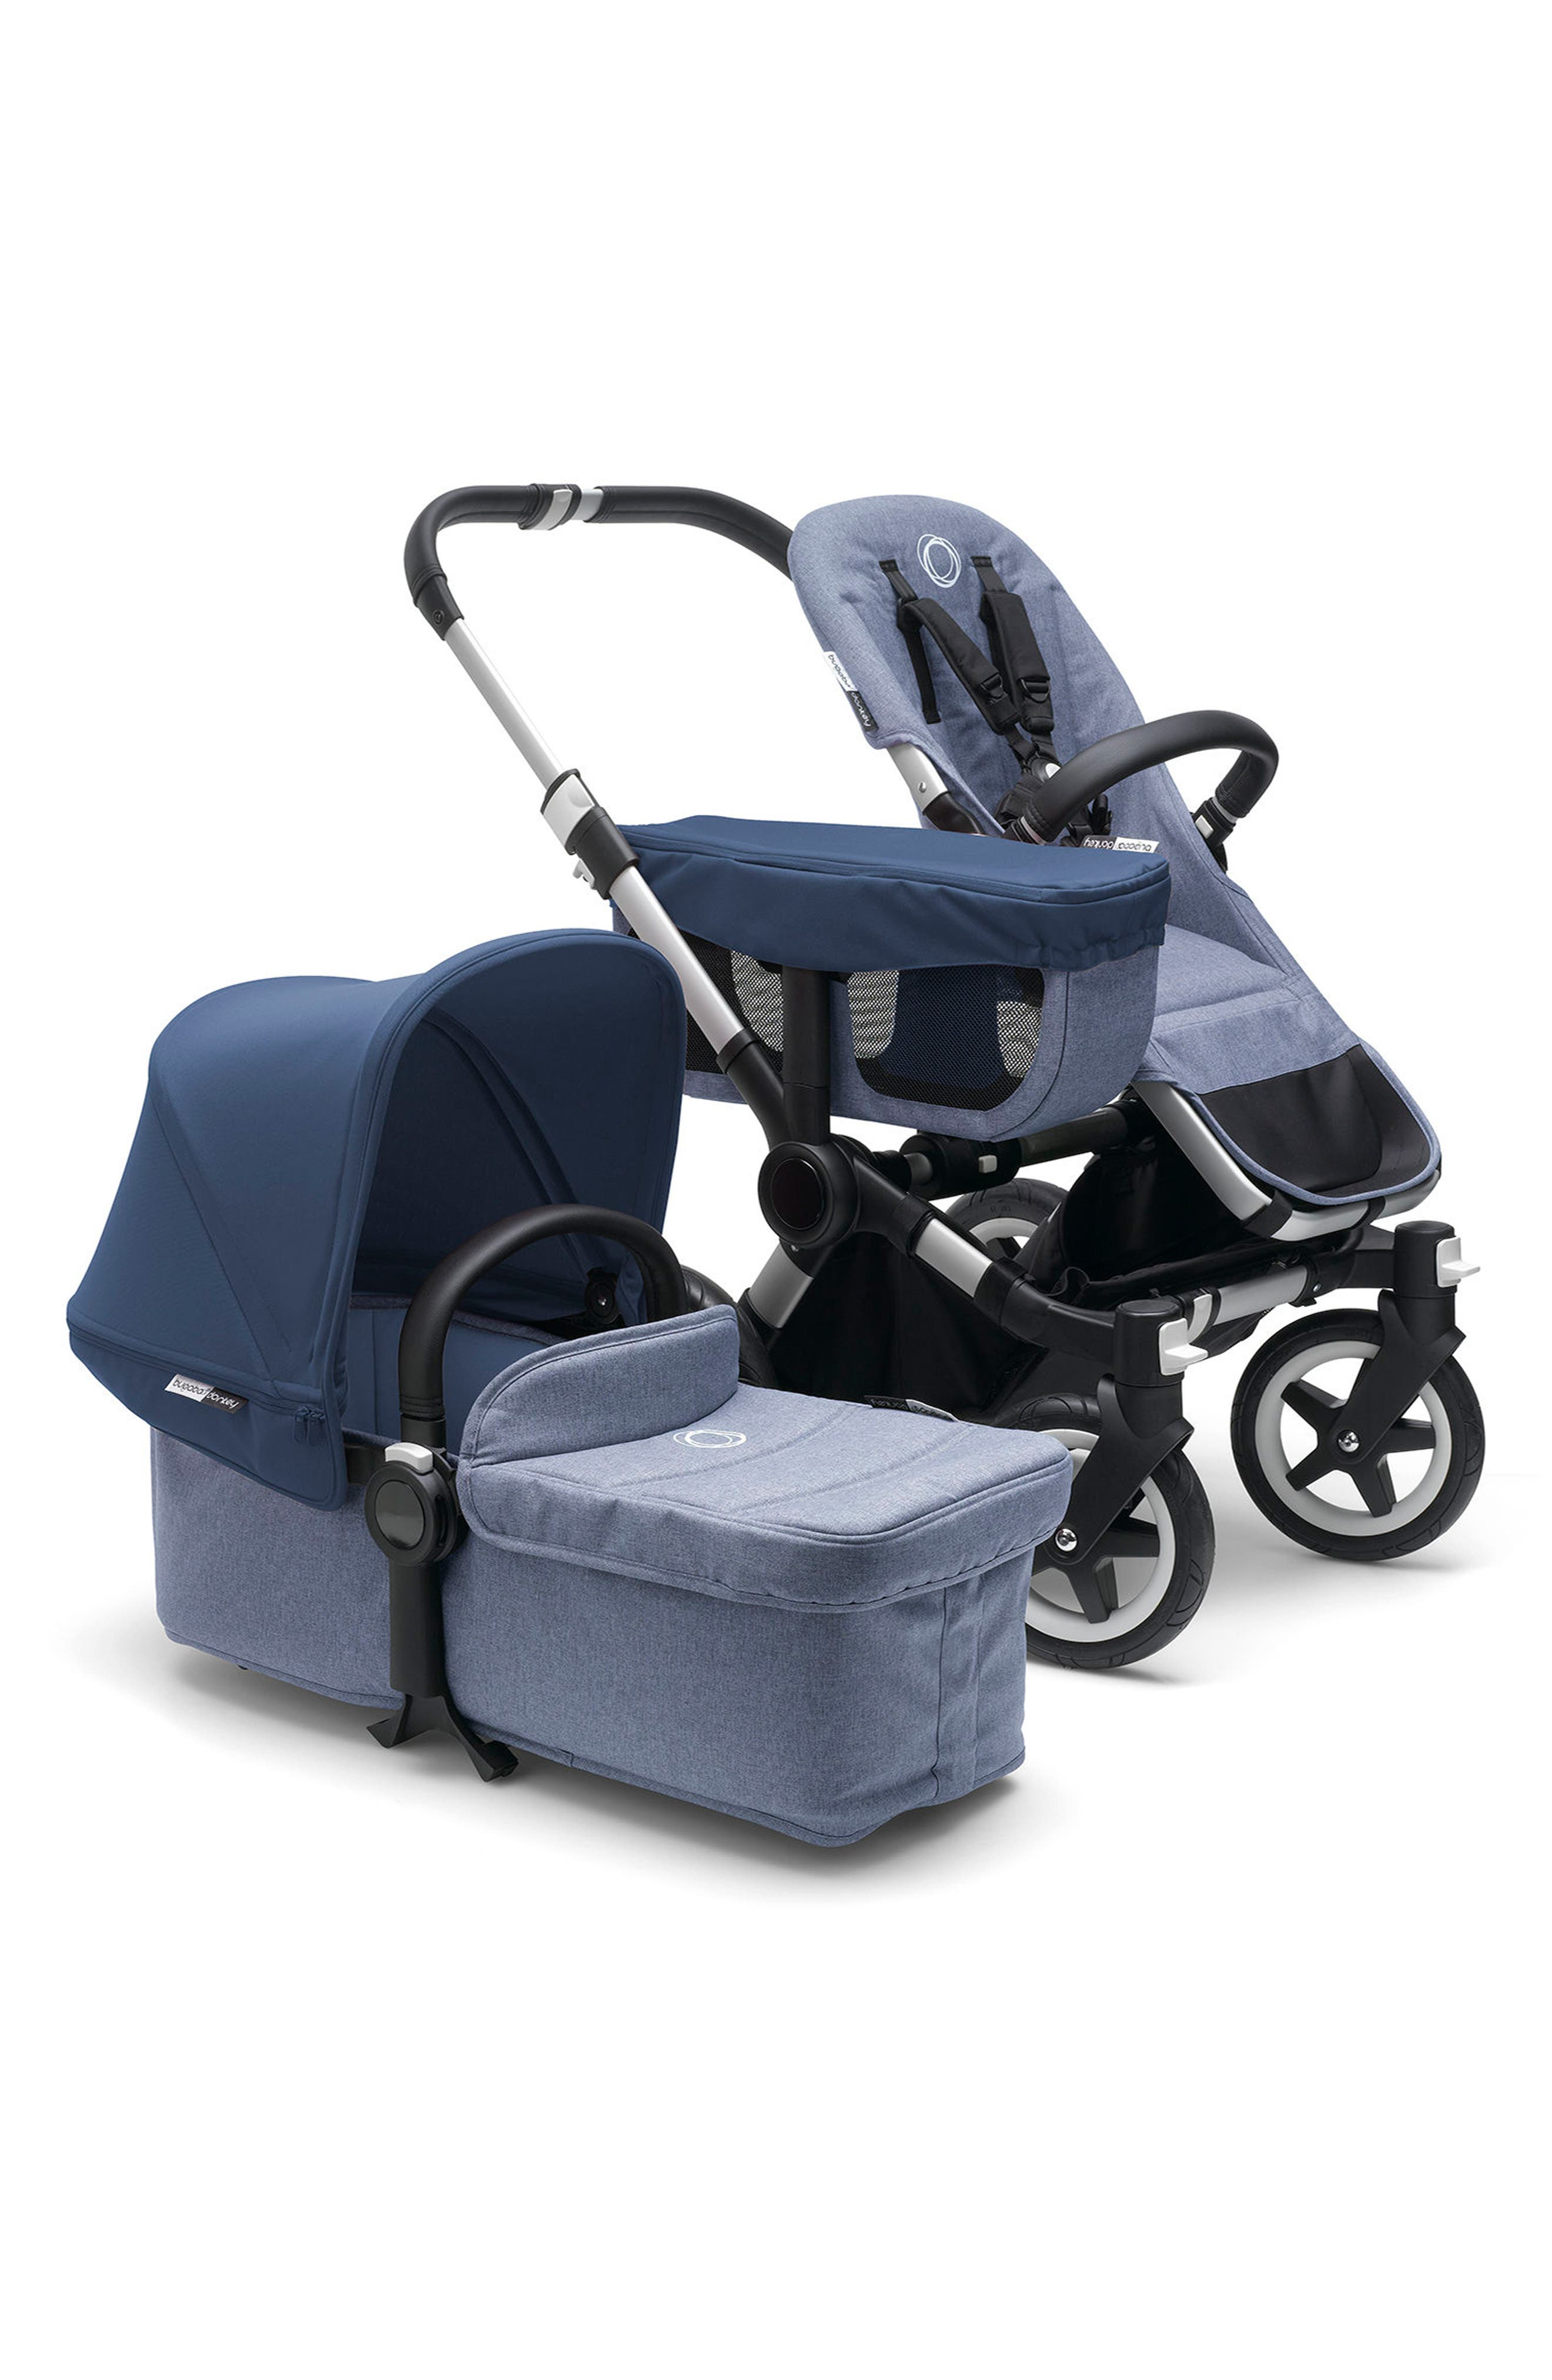 Main Image - Bugaboo Donkey2 Mono Complete Stroller with Bassinet